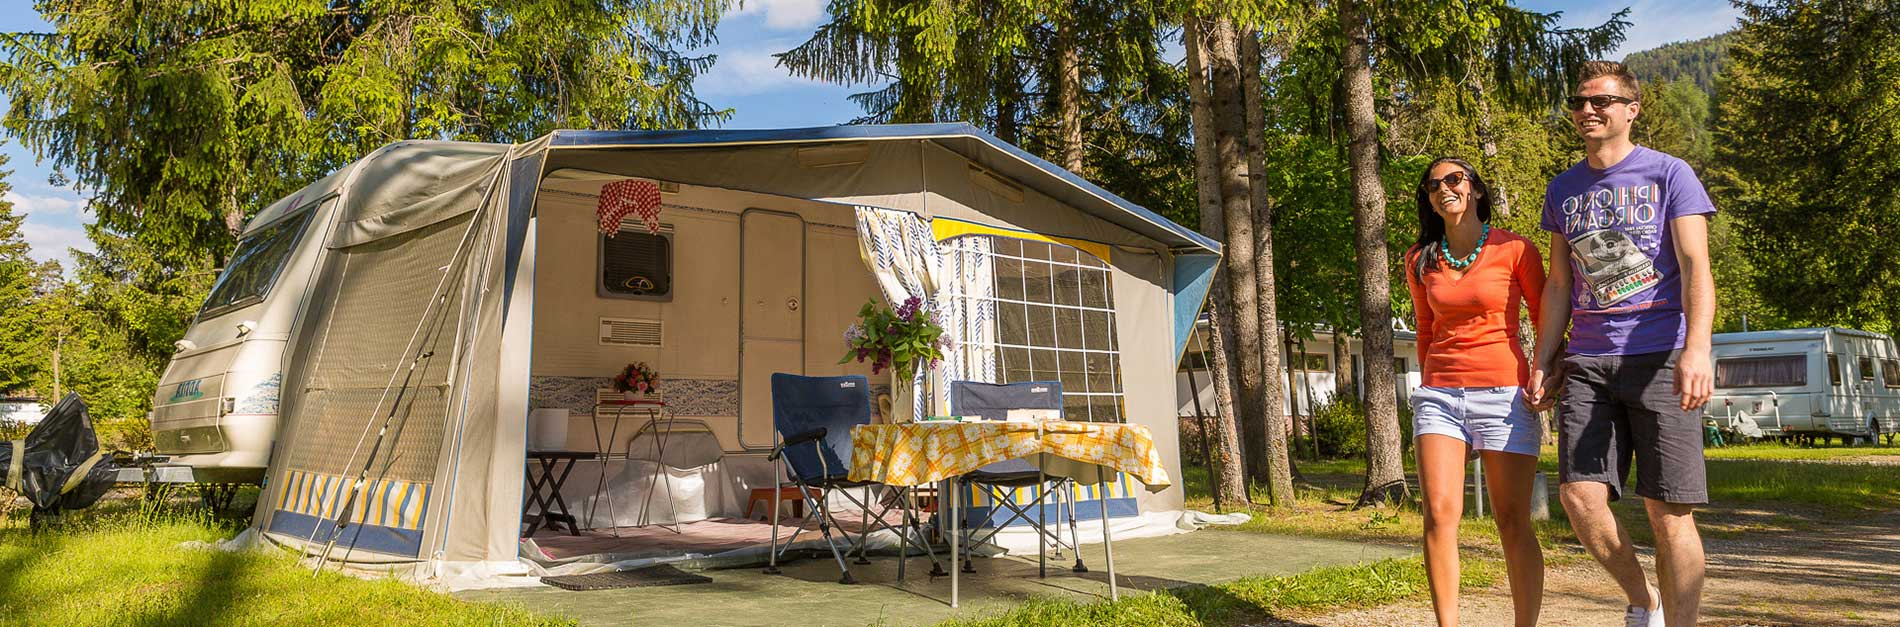 Camping Olympia attuale